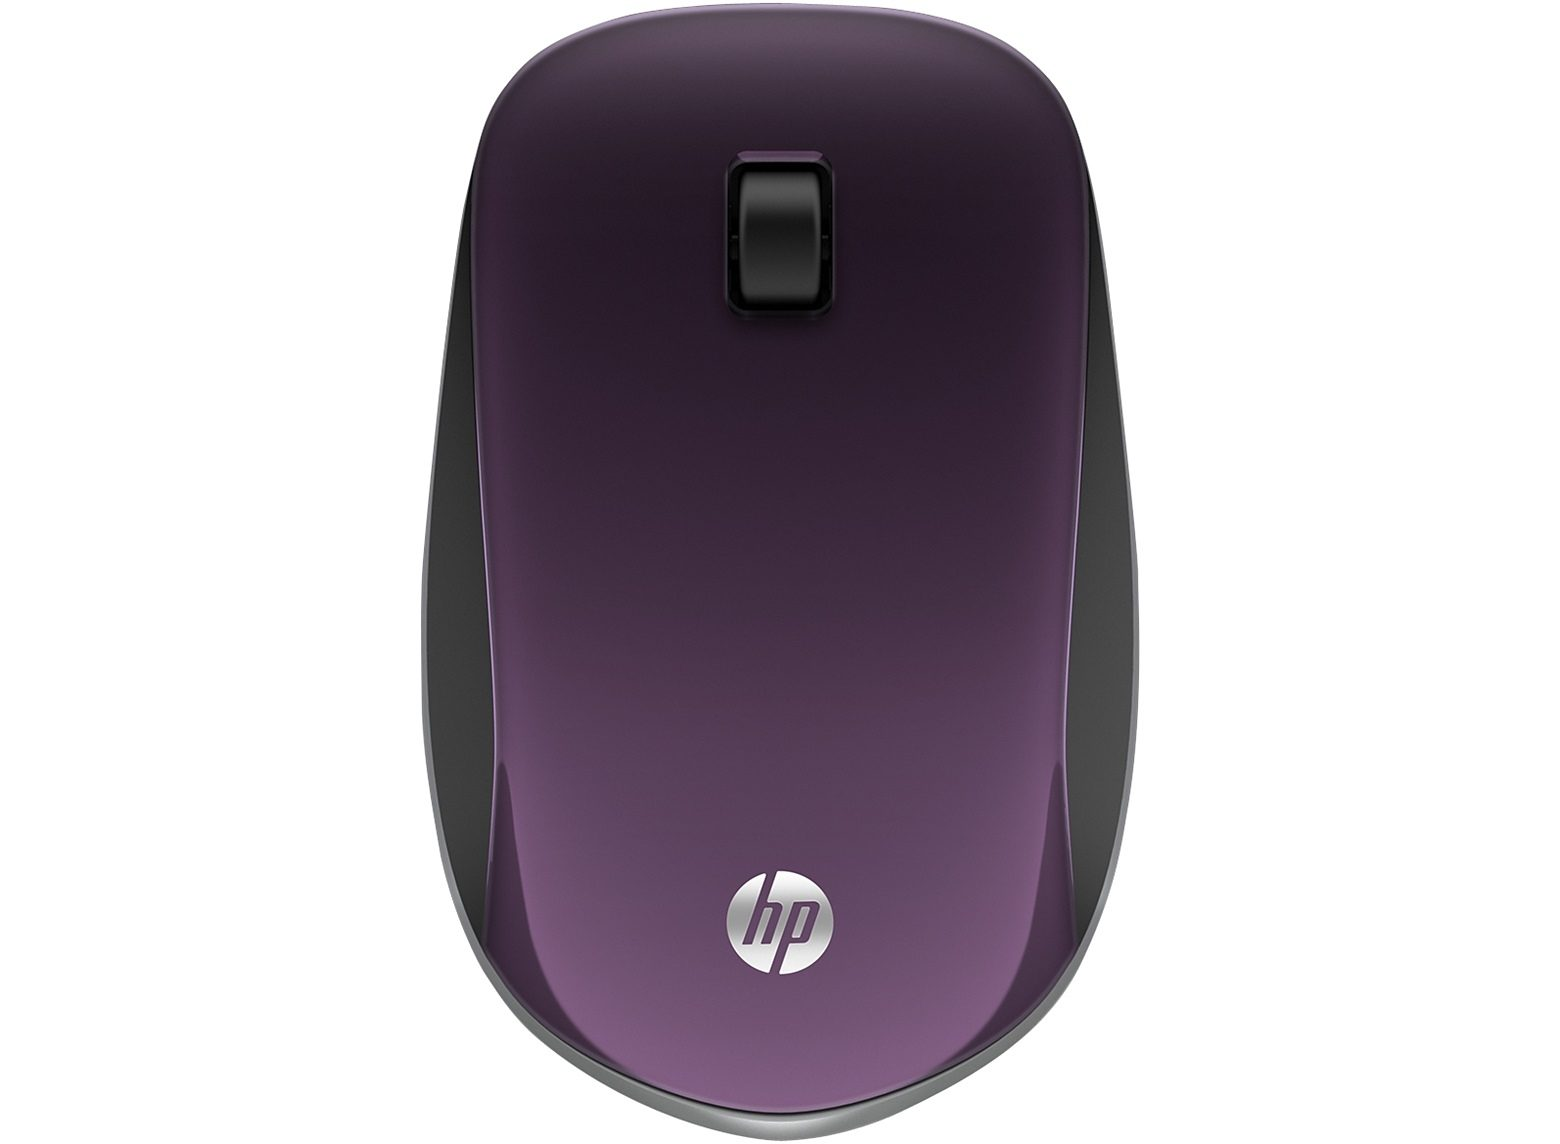 HP Maus »Z4000 Wireless-Maus violett«